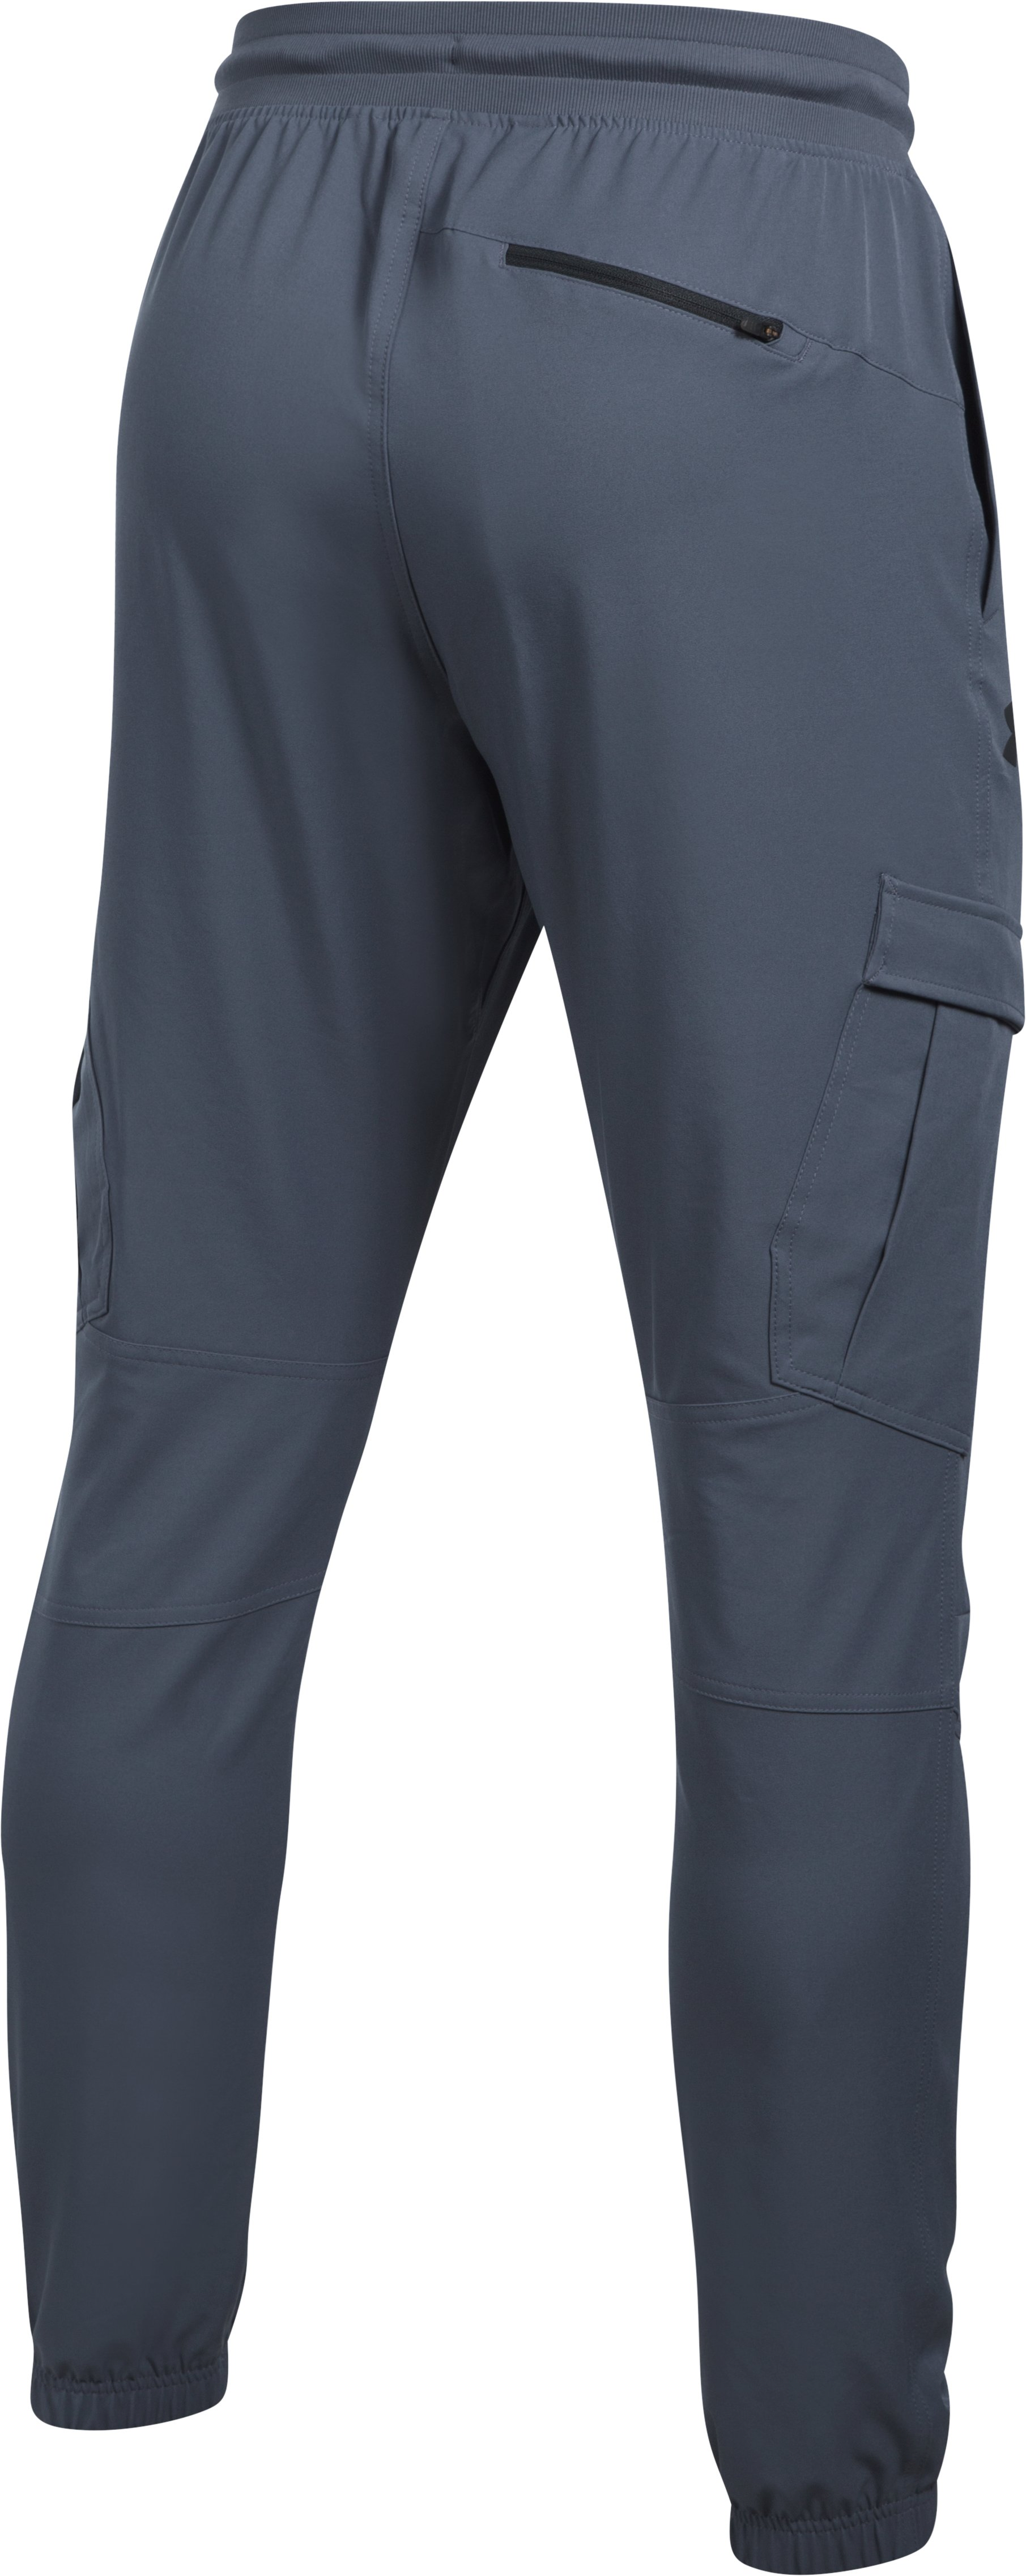 Men's UA WG Woven Cargo Pants, APOLLO GRAY, undefined